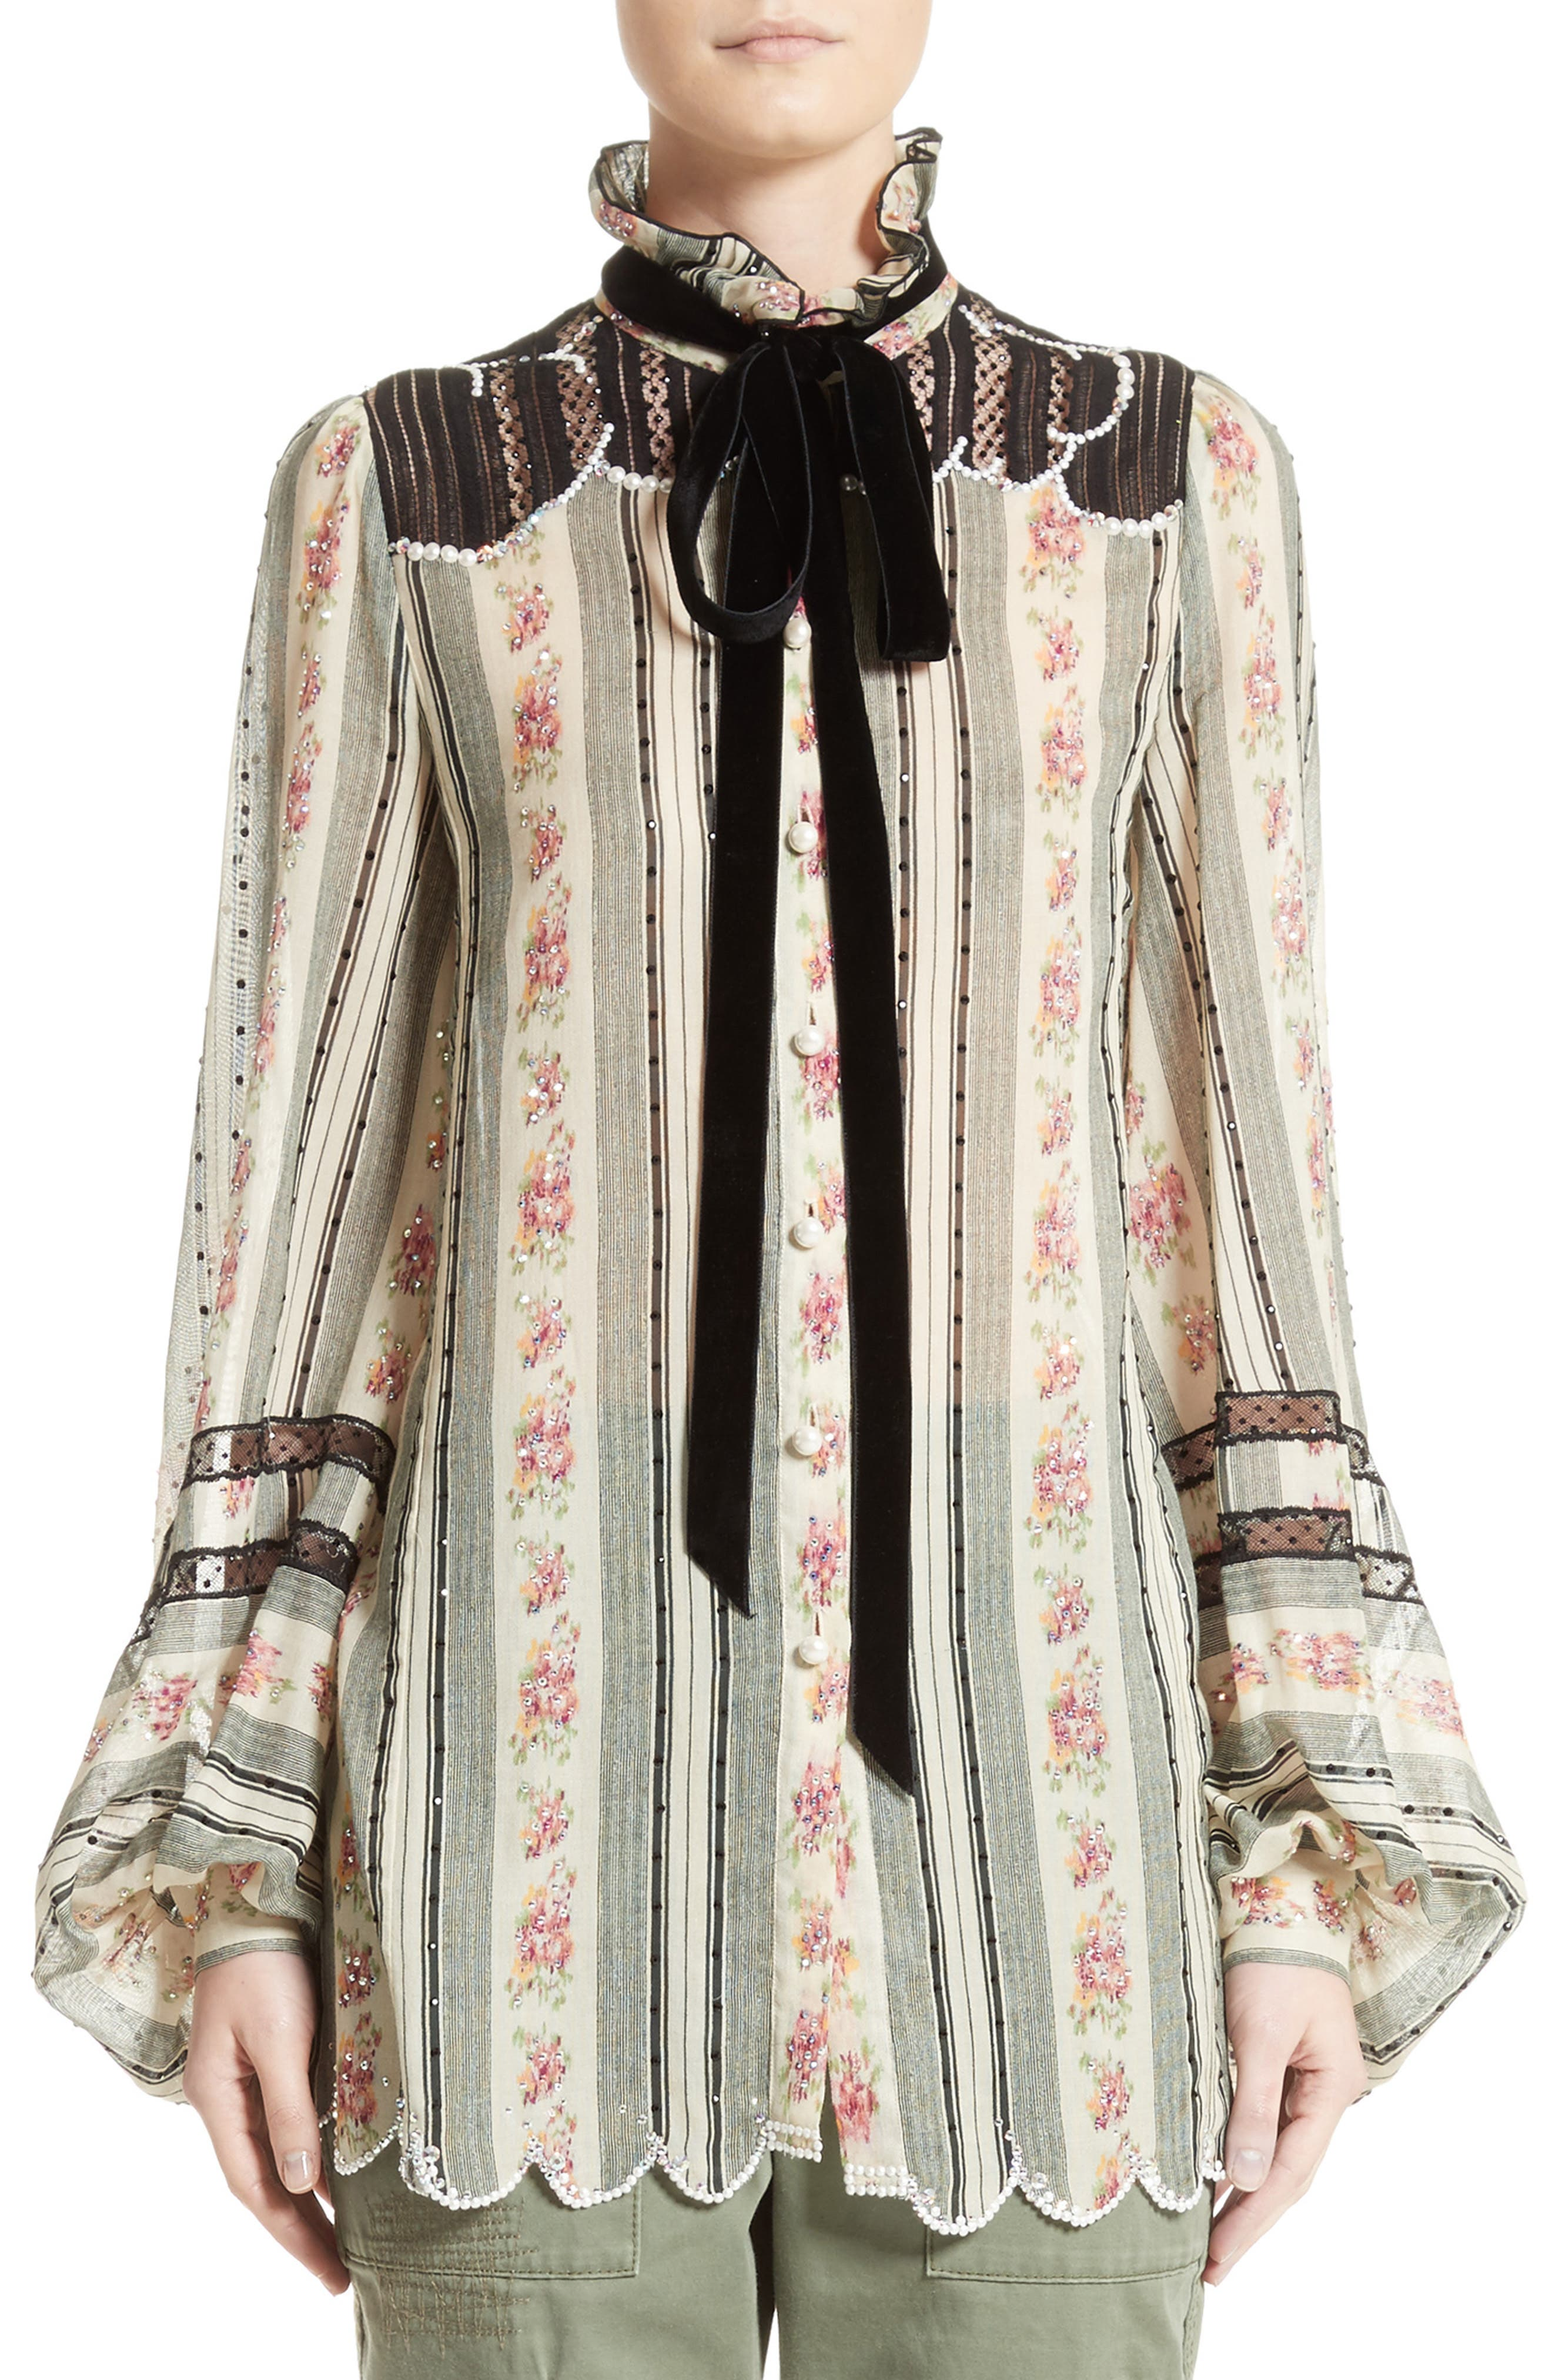 MARC JACOBS Embellished Brocade Print Blouse